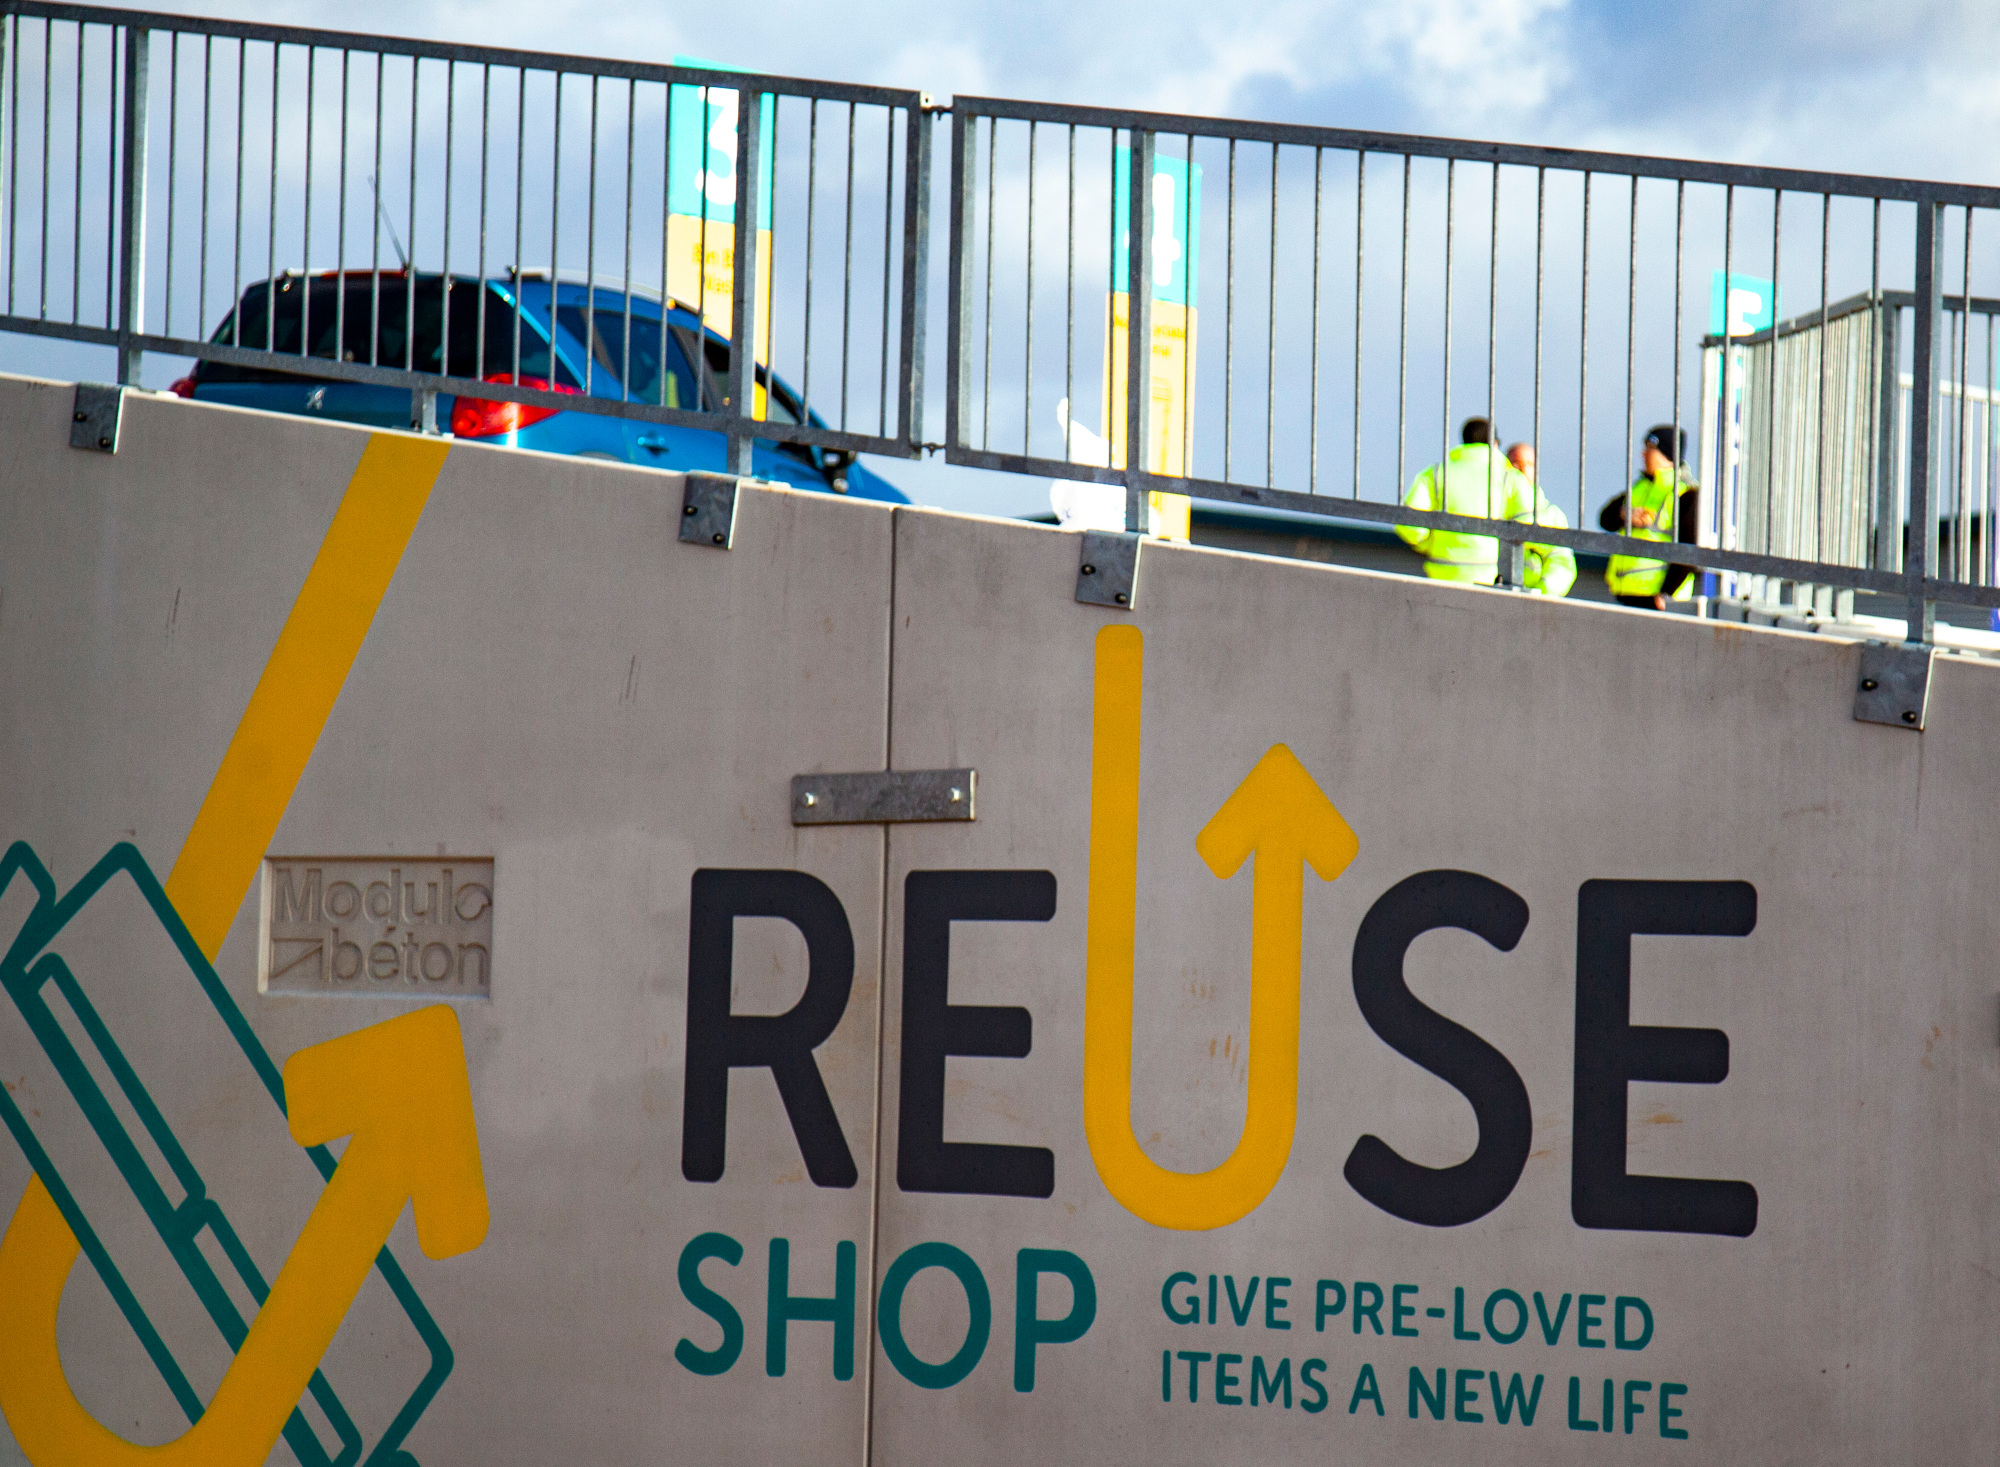 """Photo: Sign painted on side of concrete barriers saying """"Reuse Shop Give pre-loved items a new life"""""""